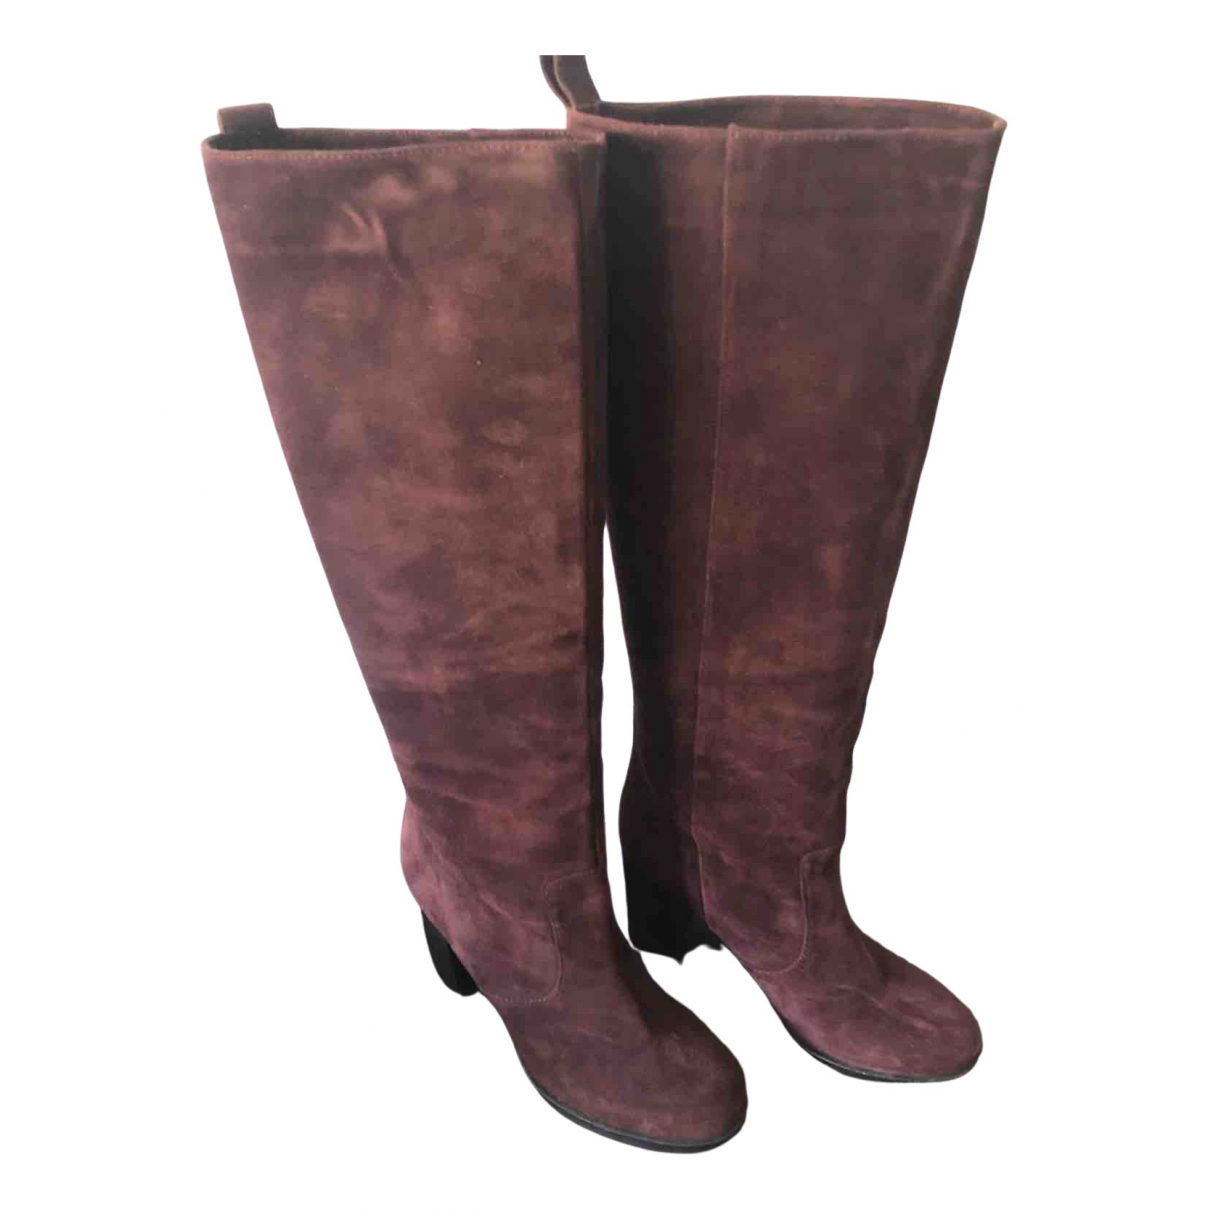 & Stories \N Burgundy Suede Boots for Women 38 EU